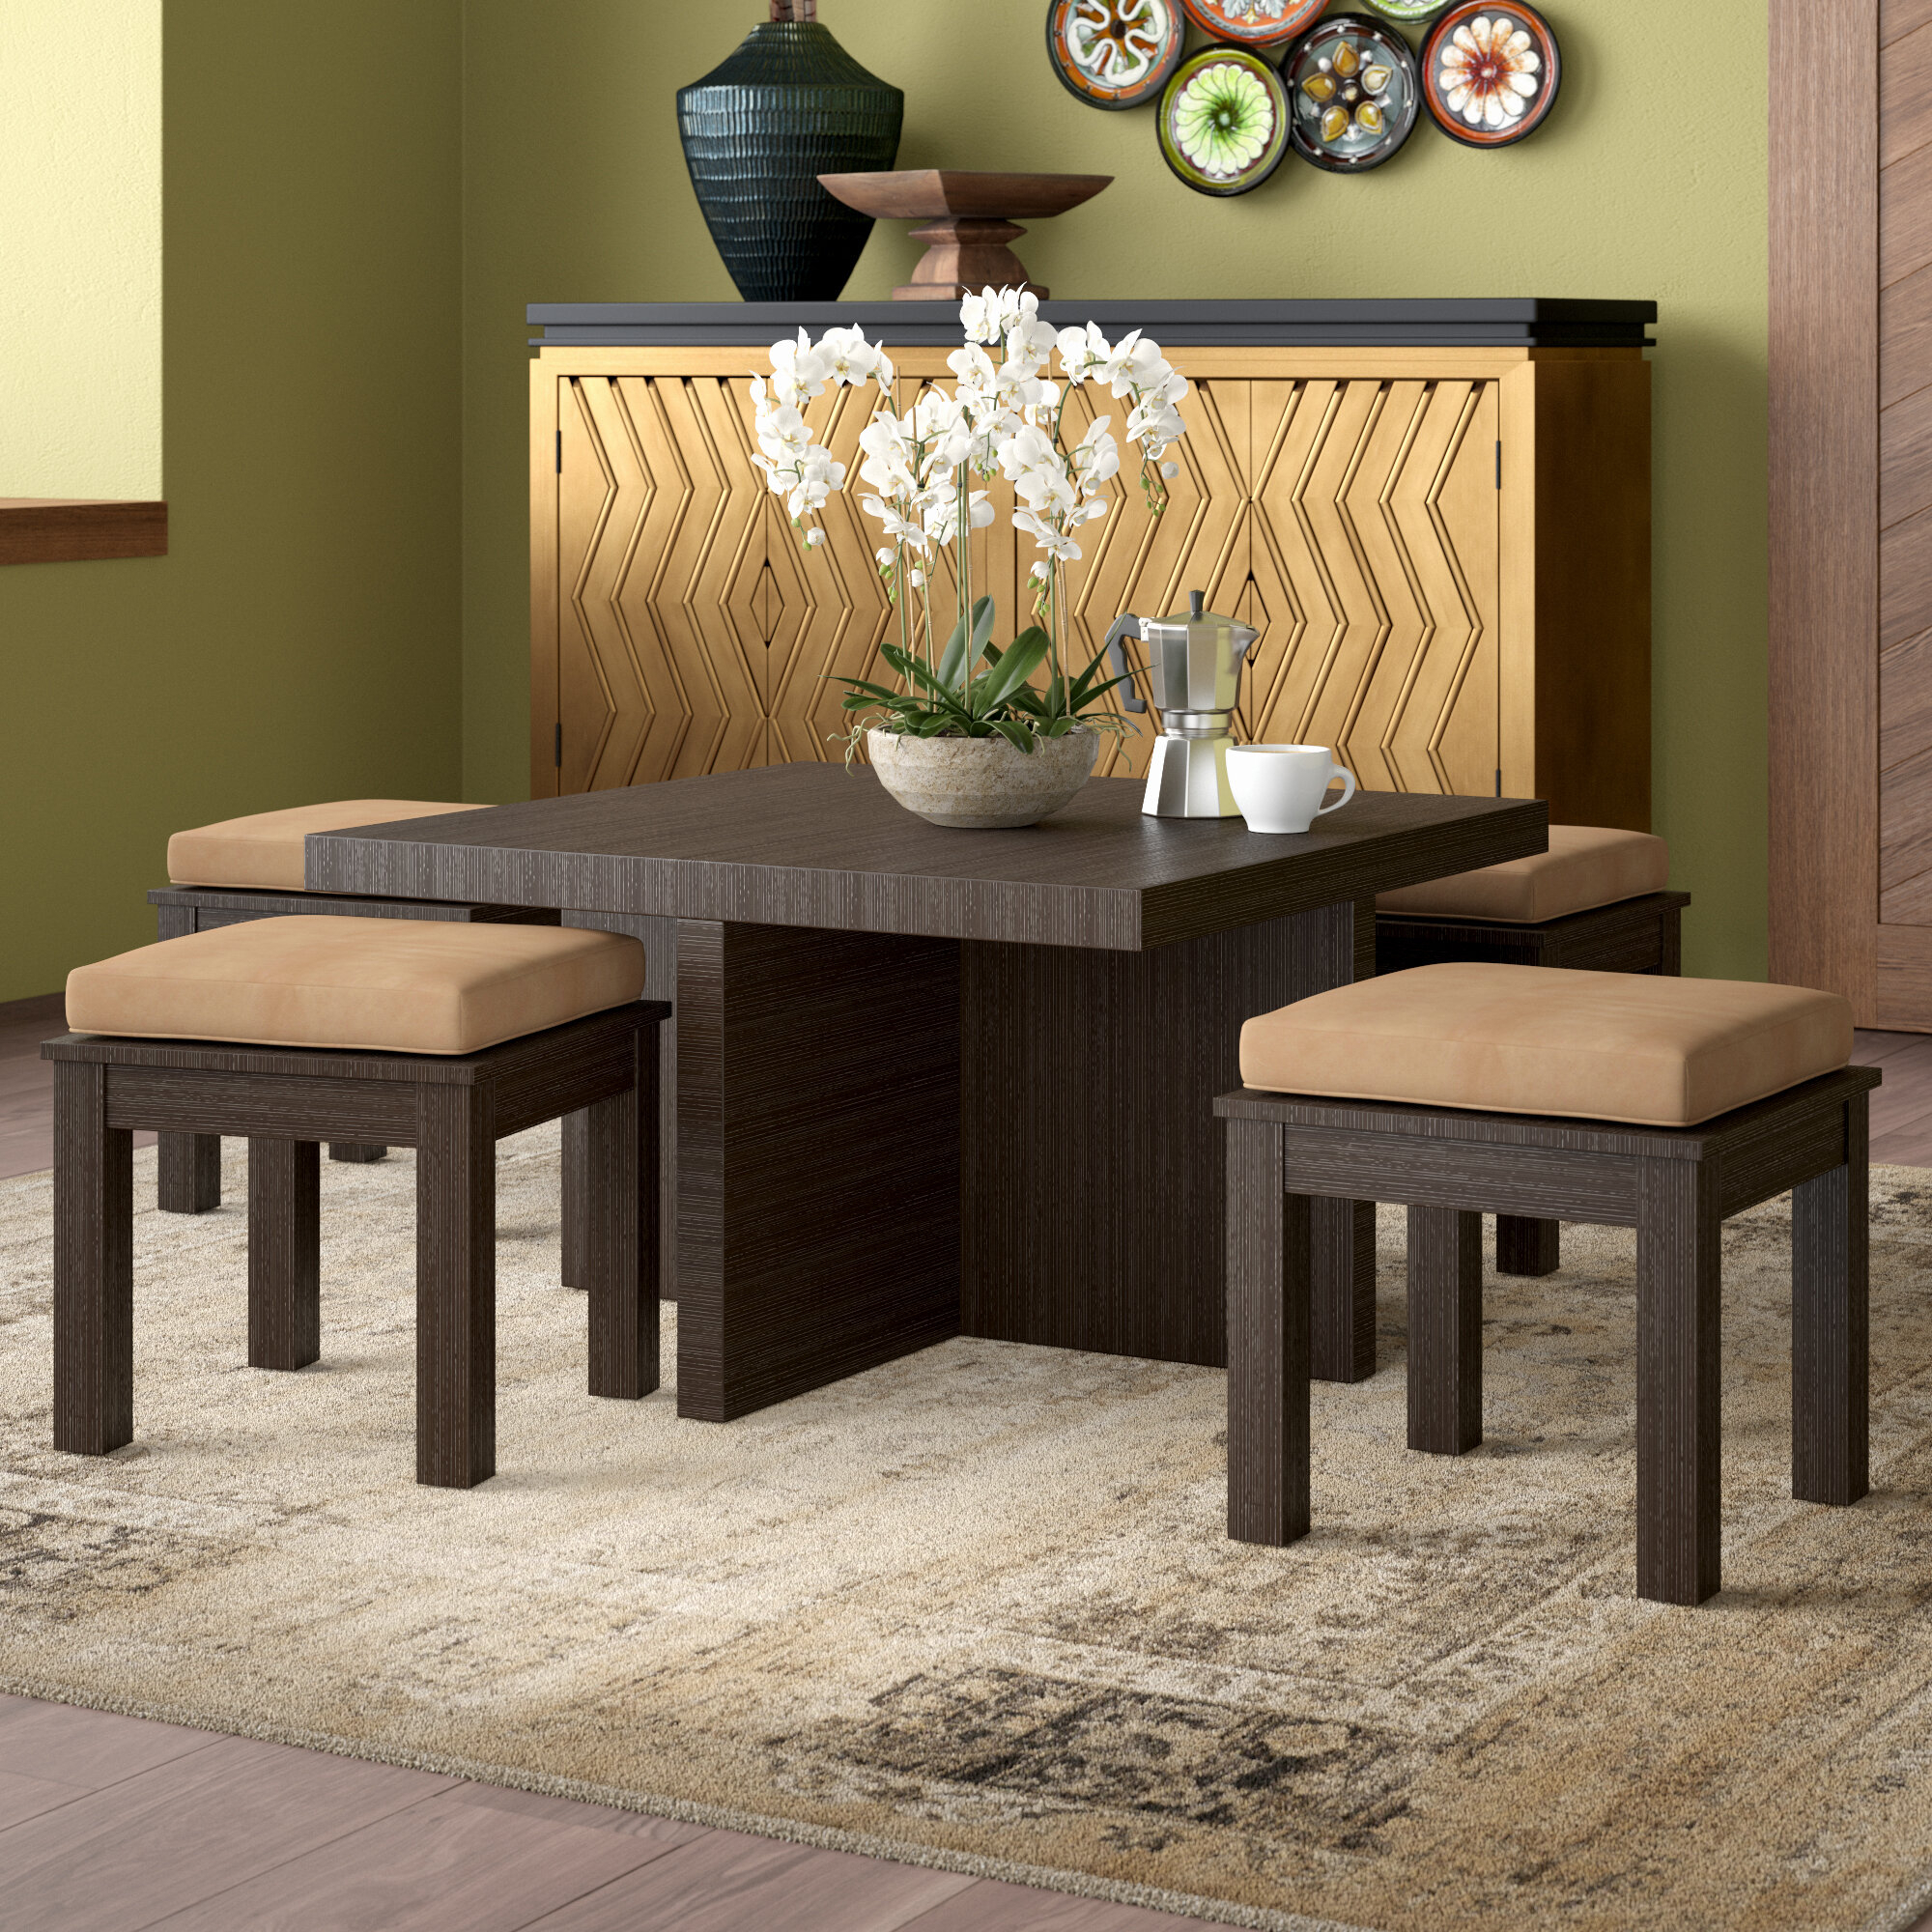 Mercedes 5 Piece Dining Set Throughout Recent Kerley 4 Piece Dining Sets (Image 10 of 20)